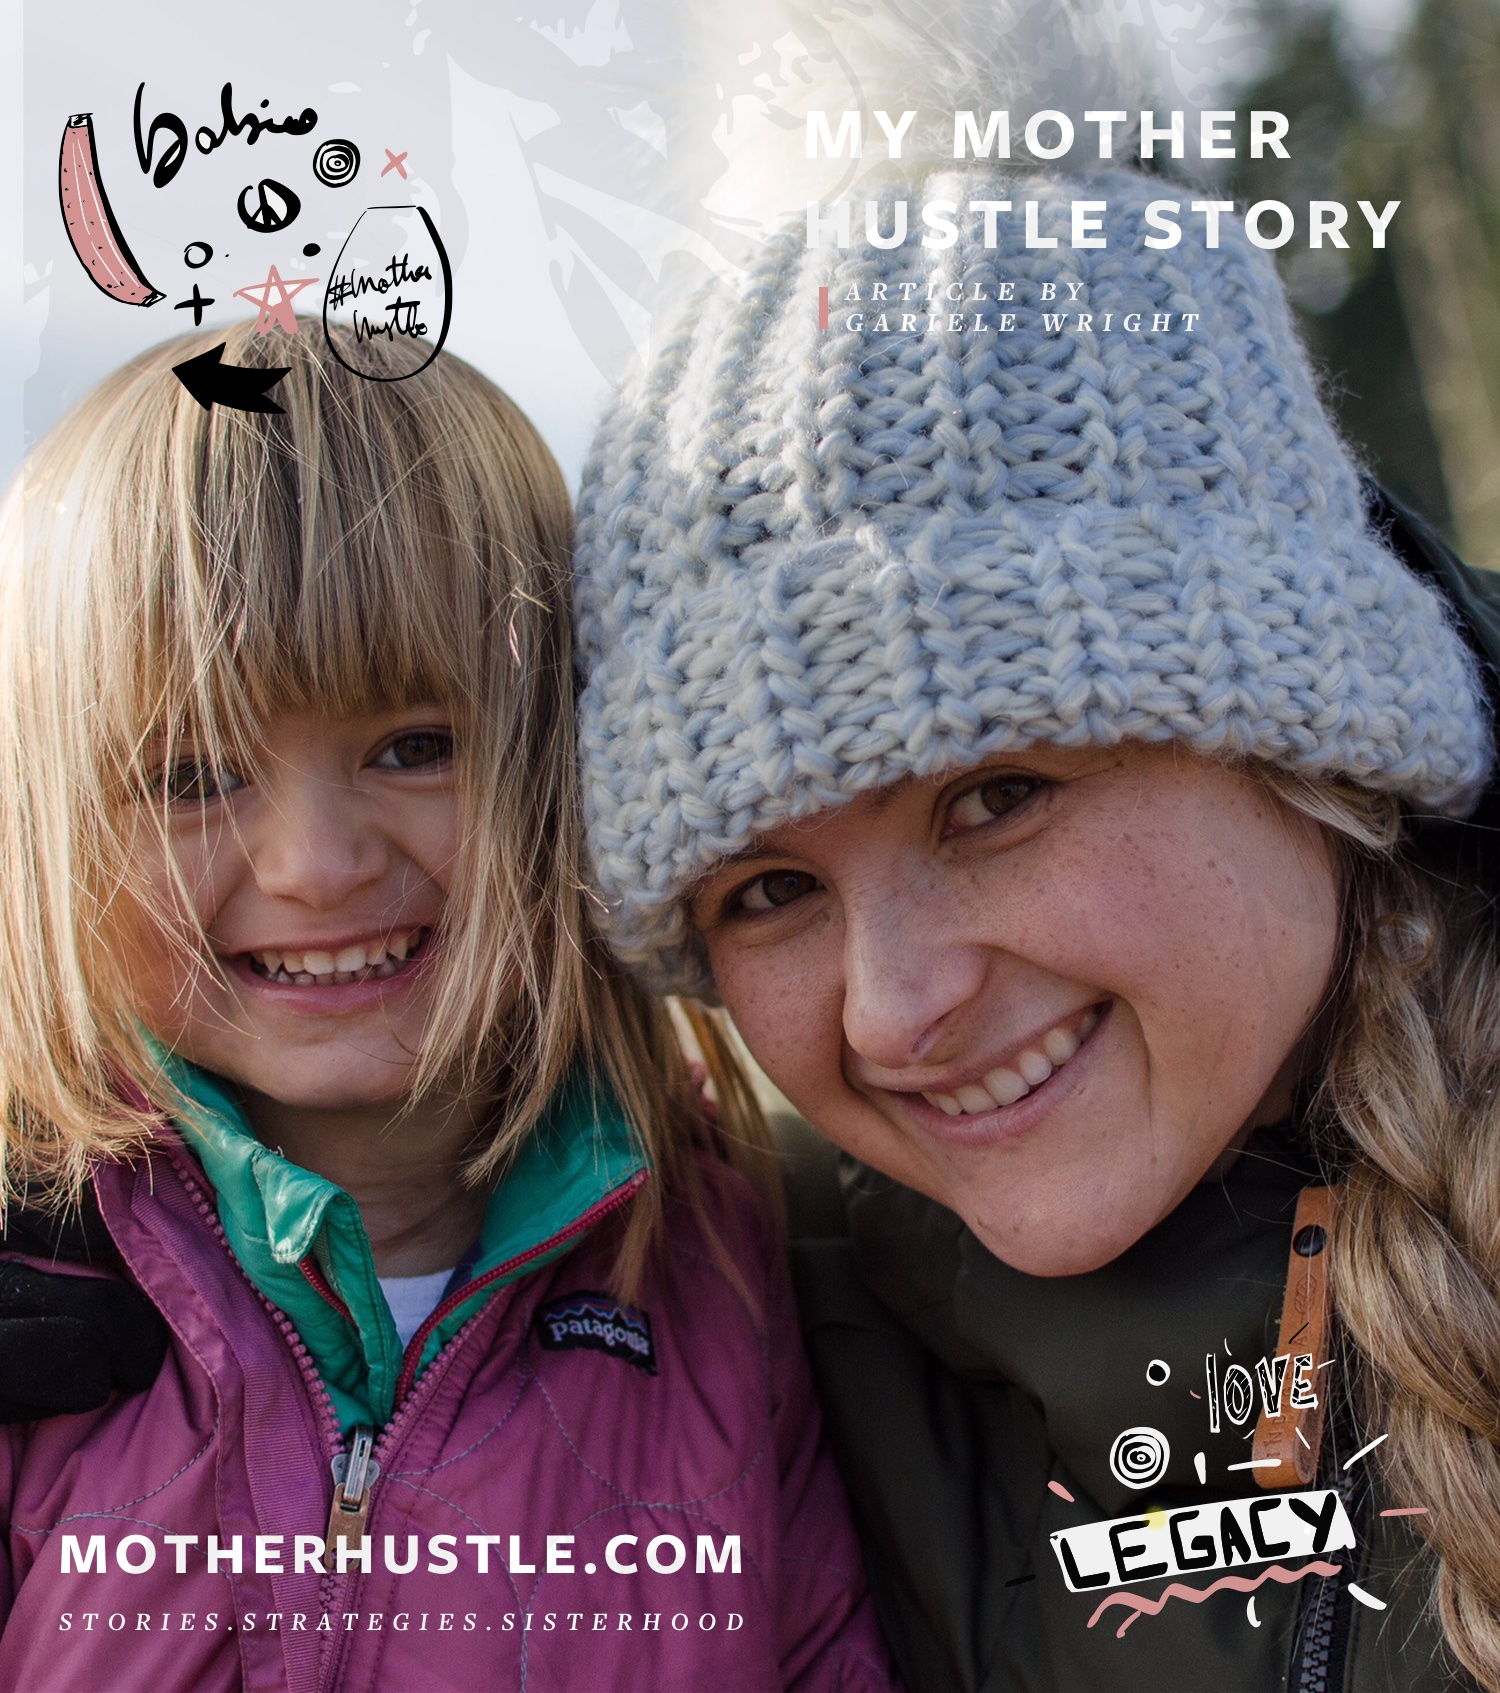 MyMotherHustle Story - Gariele Wright